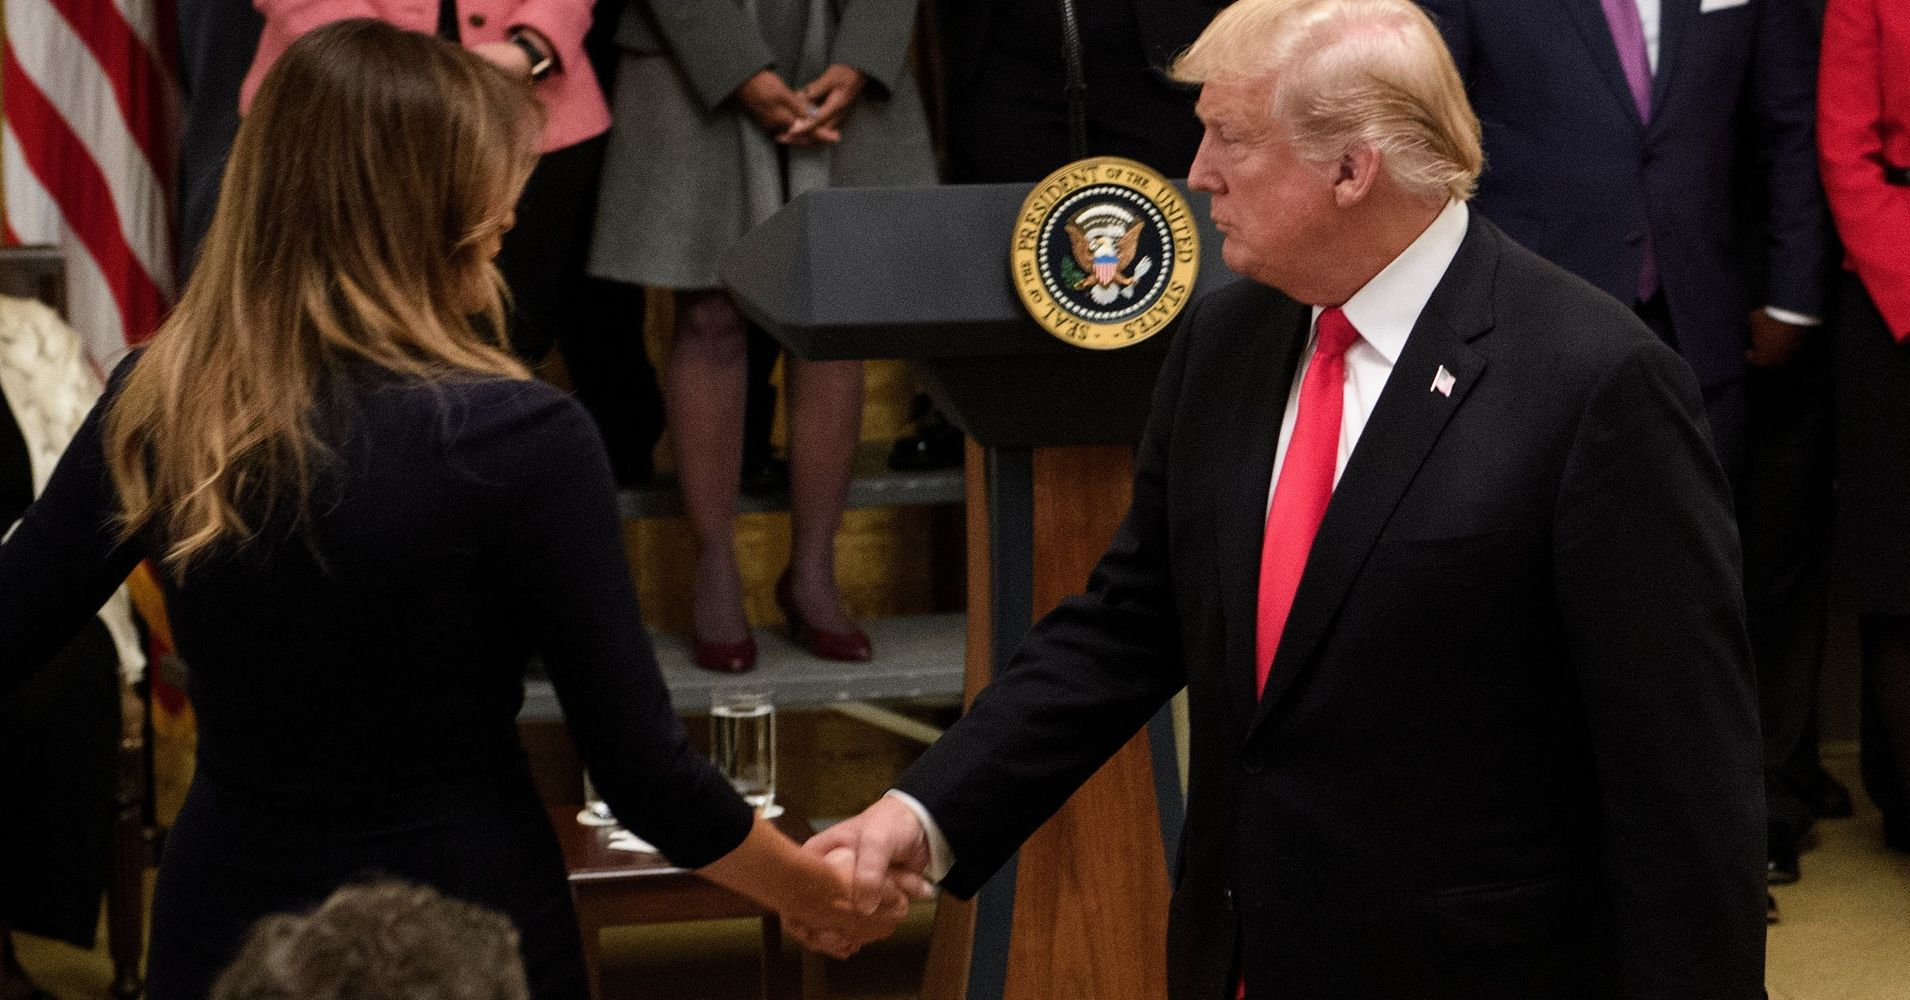 Melania Trump Appears To Have Saved Donald Trump From ...